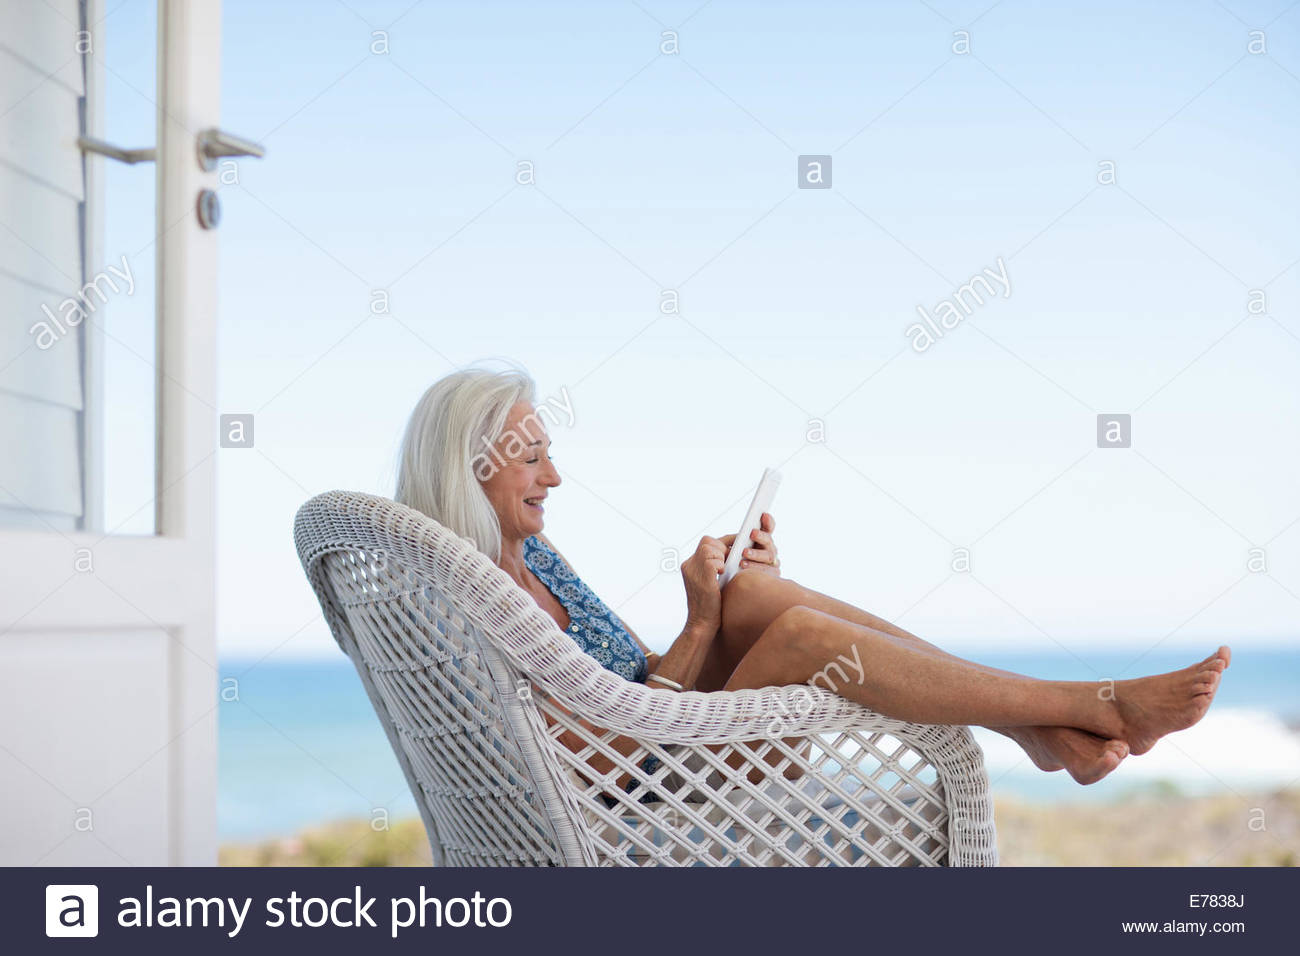 Senior woman using digital tablet in chair Photo Stock